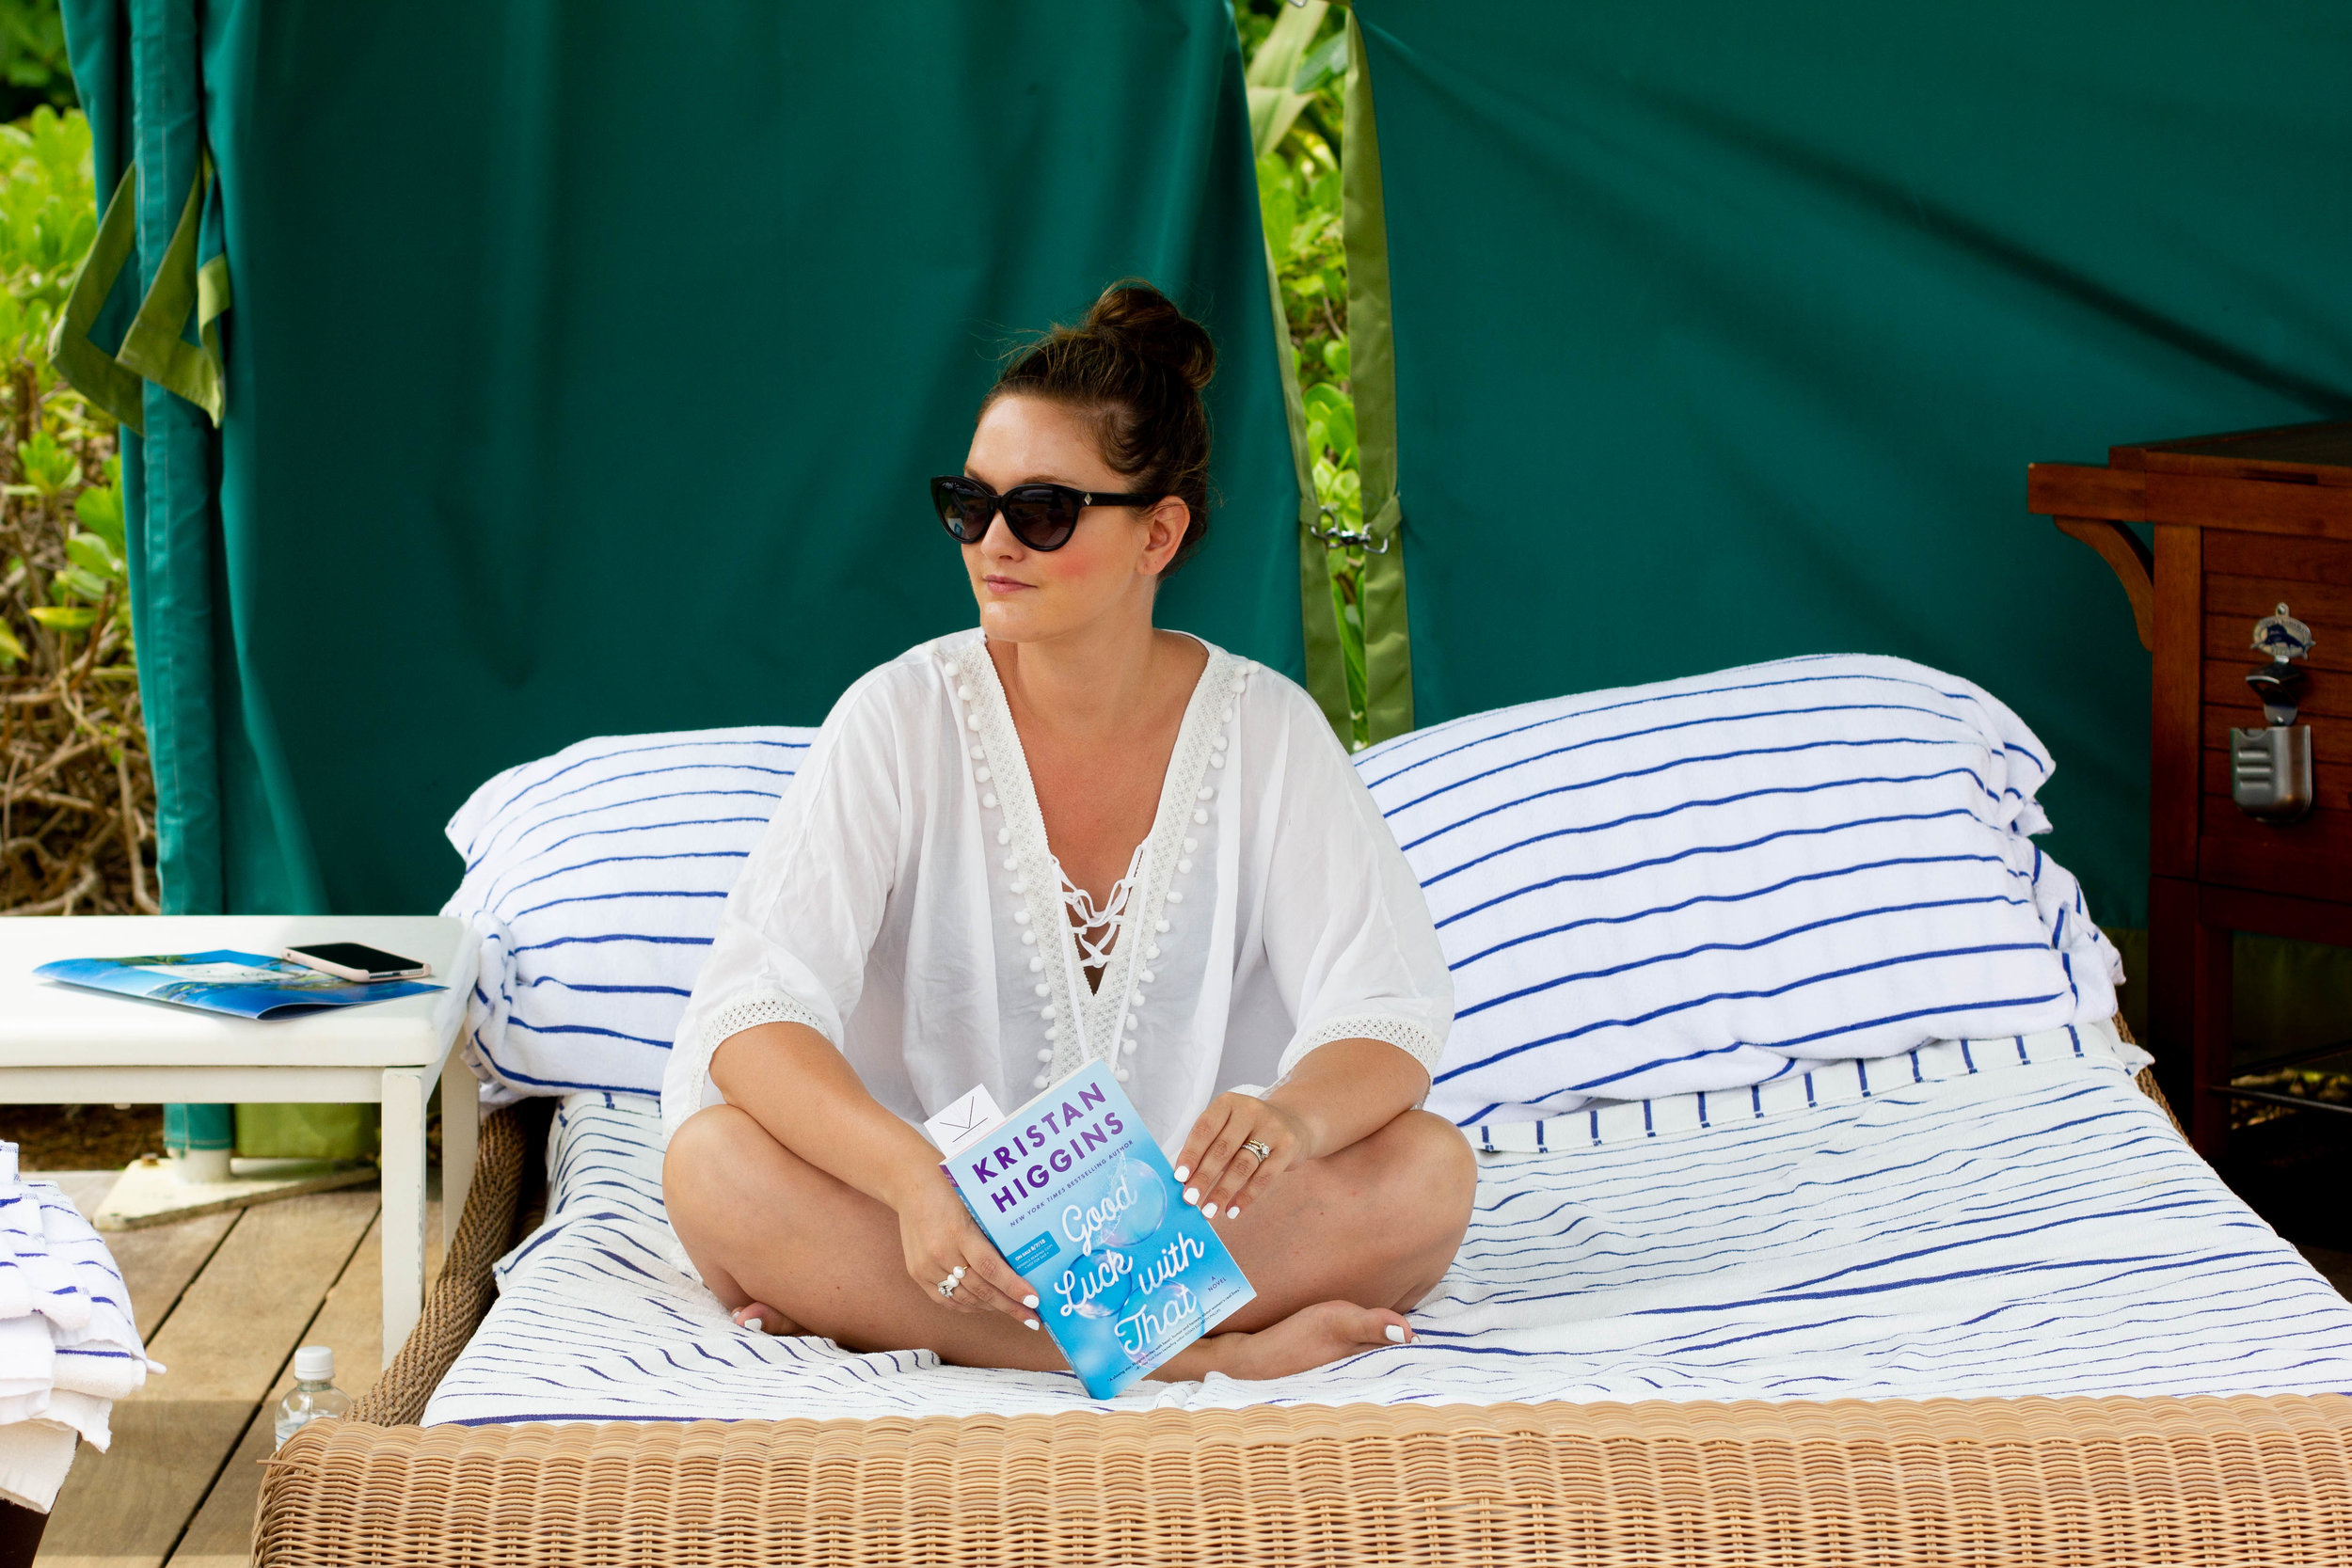 Reading Good Luck with That by Kristan Higgins at St. Regis in Kauai